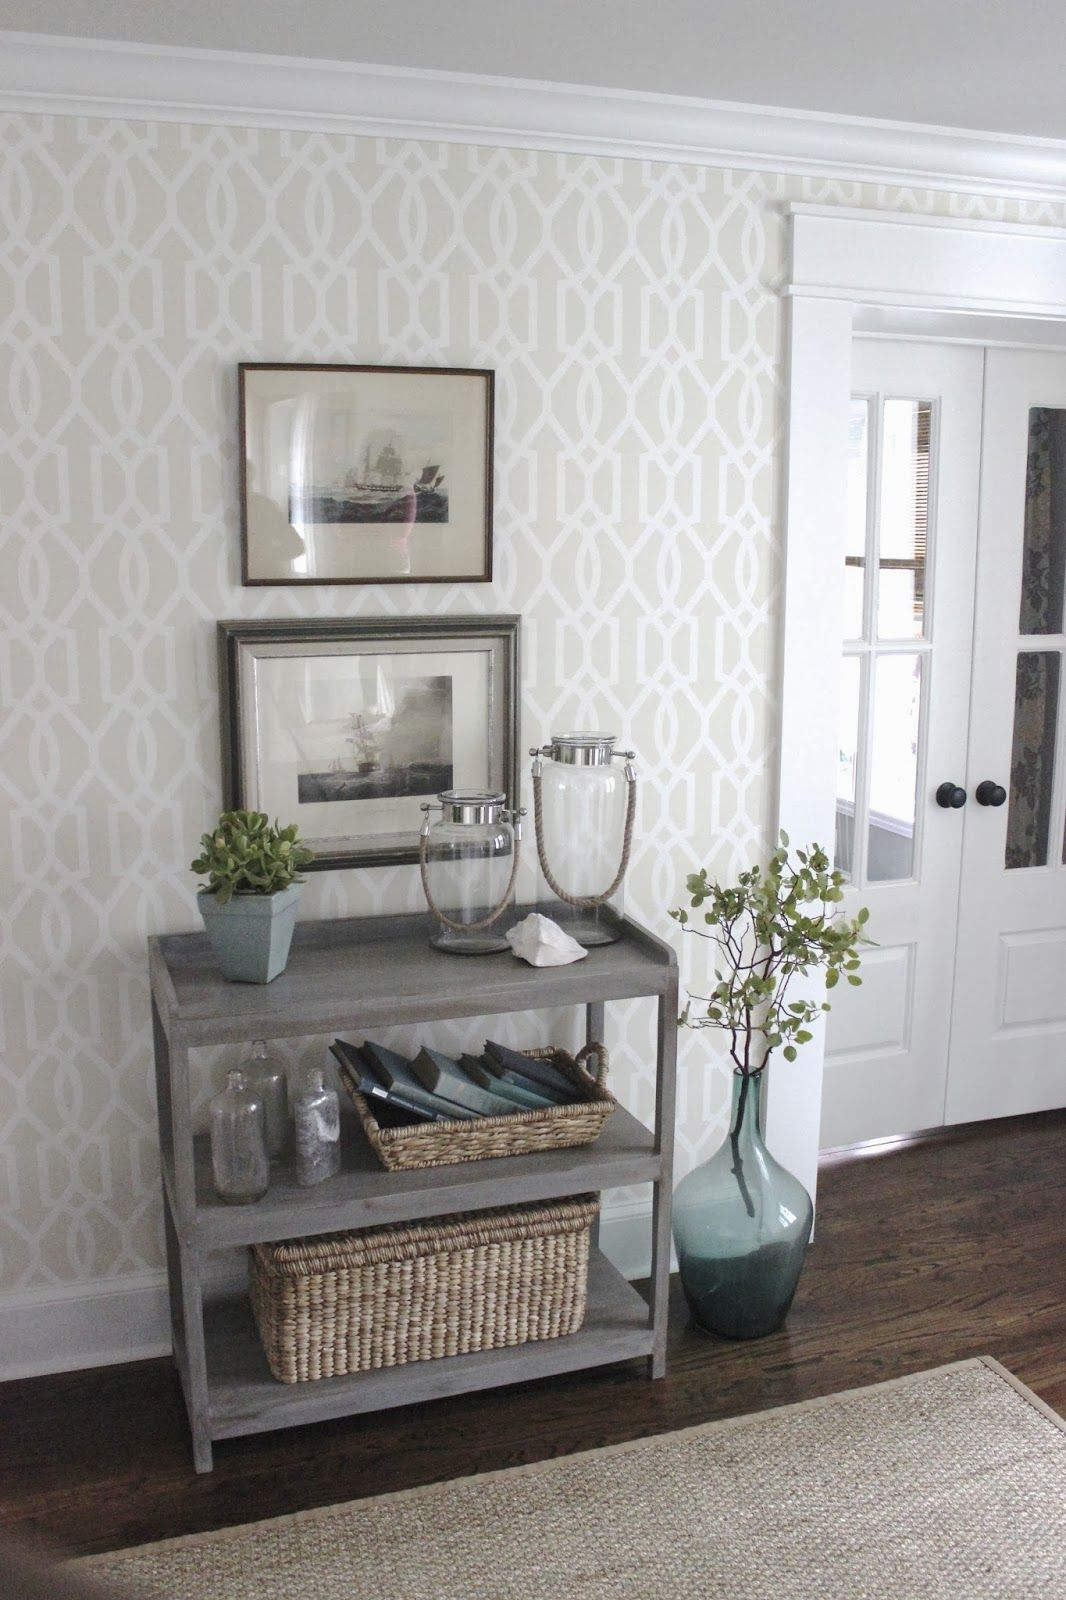 wallpaper decoration for living room curtain ideas three windows before and after part 2 the home decor design indulgence